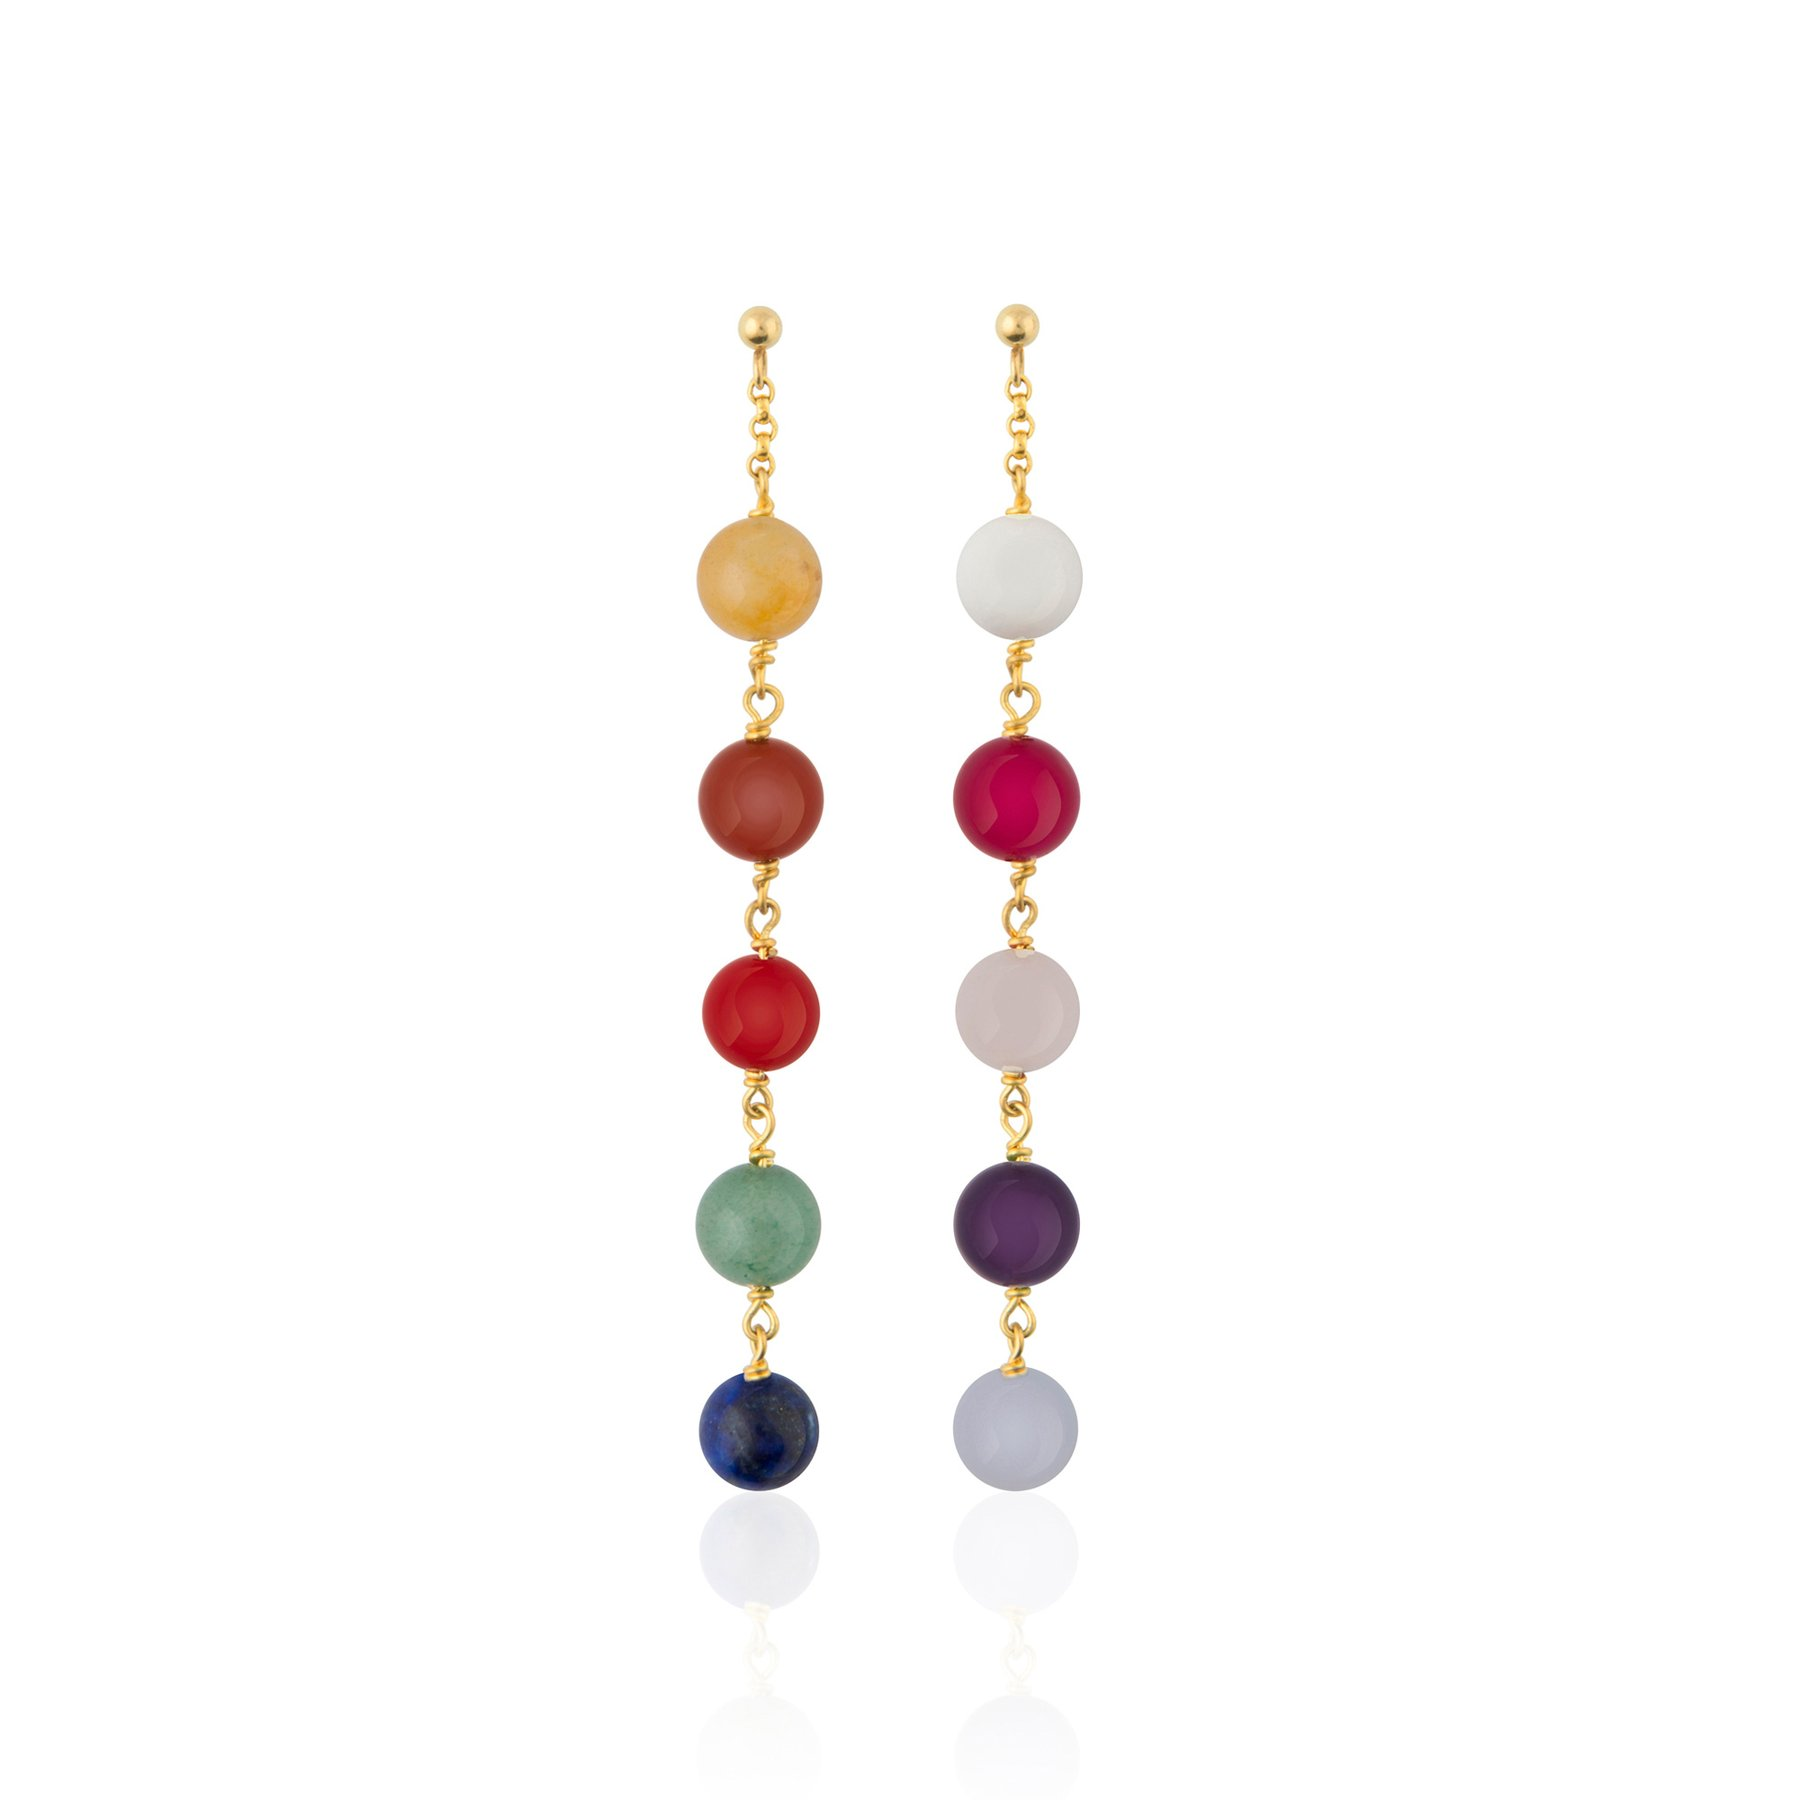 Sophie by sophie childhood earrings - gold